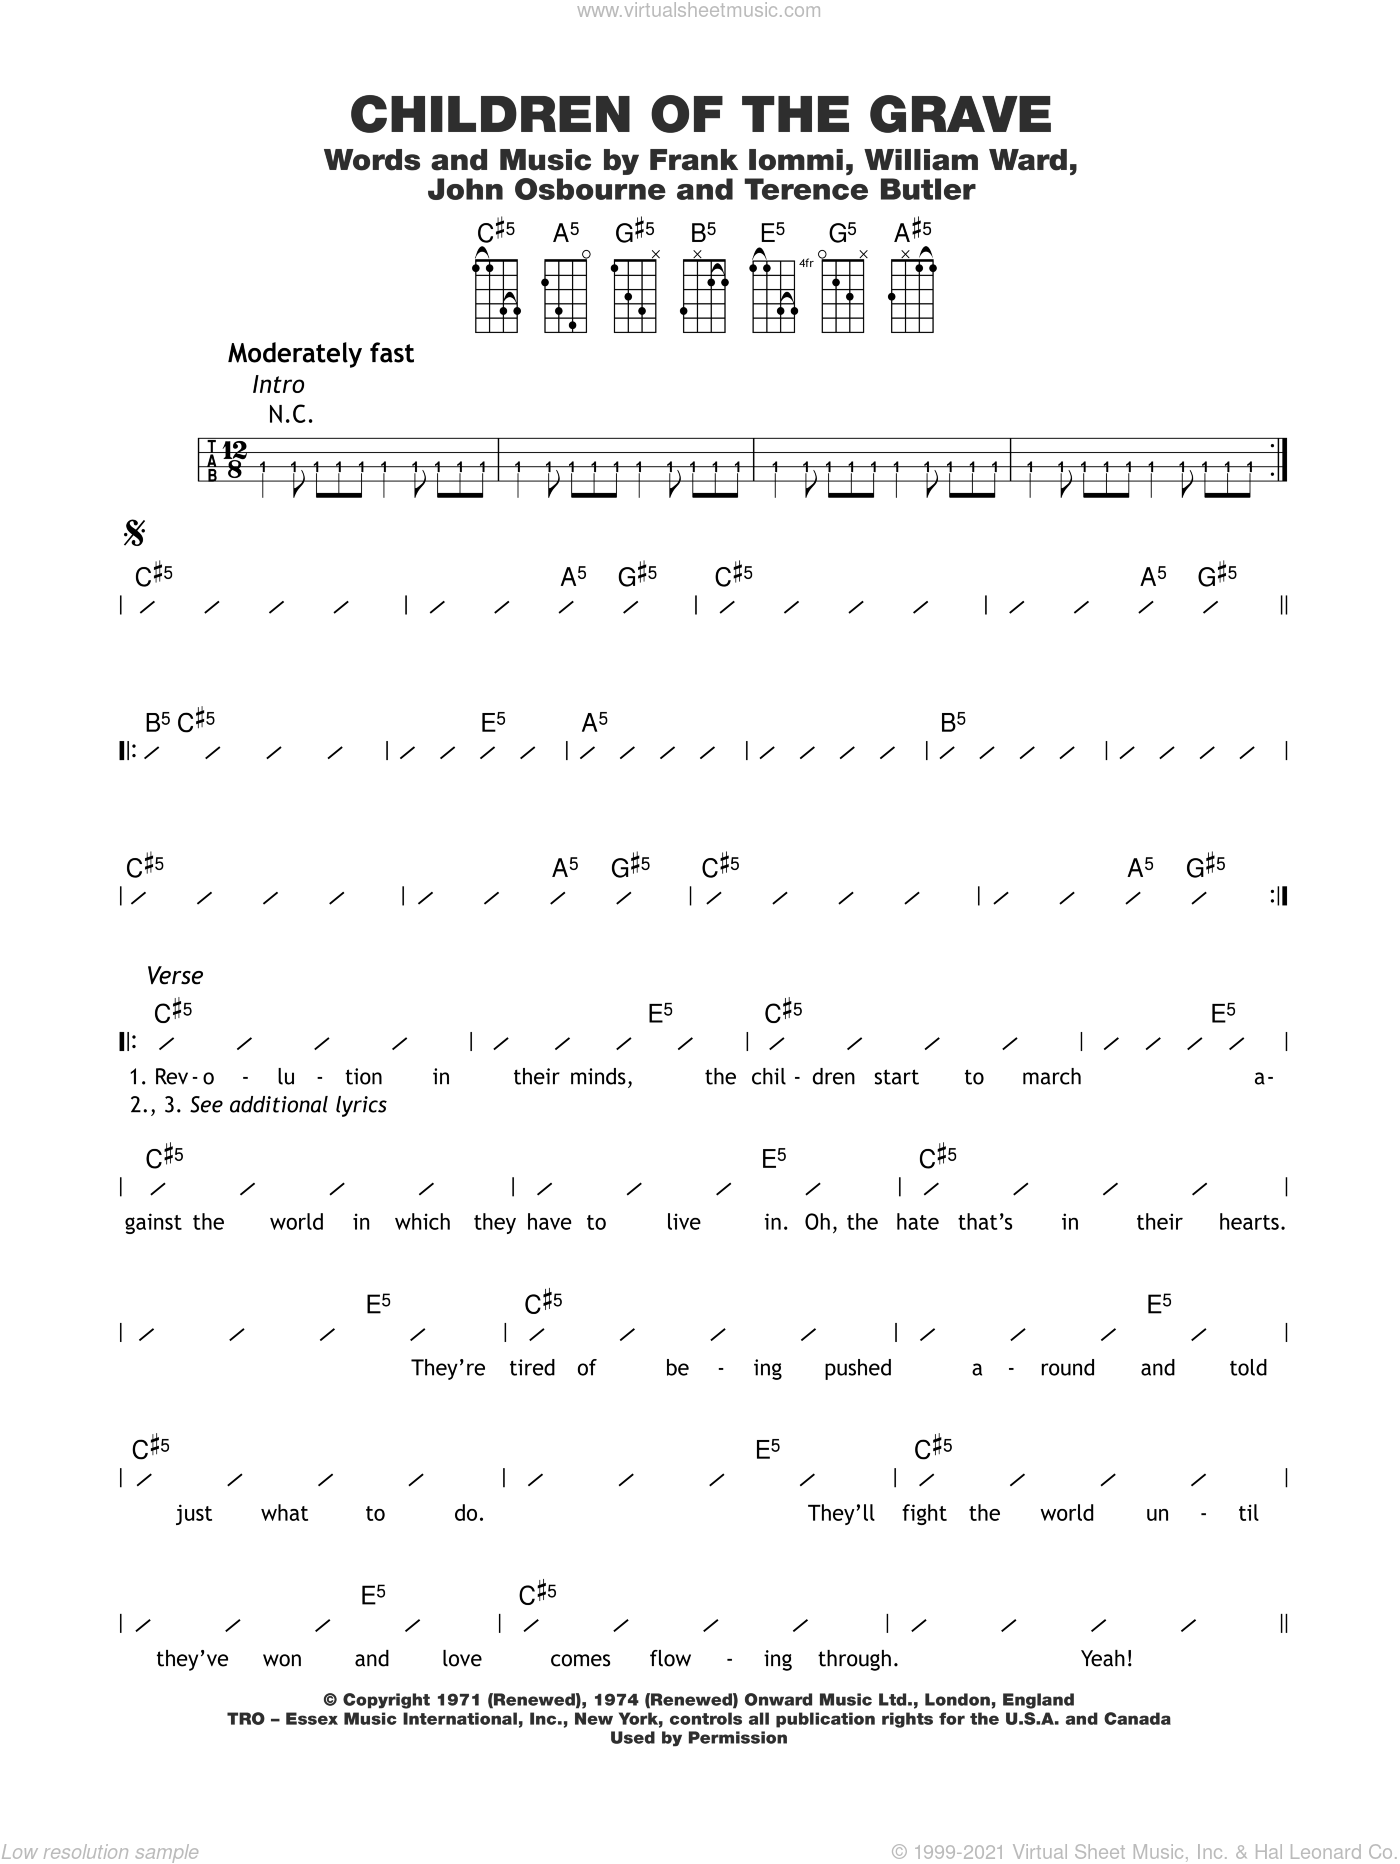 Children Of The Grave sheet music for ukulele (chords) by Black Sabbath, Frank Iommi, John Osbourne, Terence Butler and William Ward, intermediate skill level